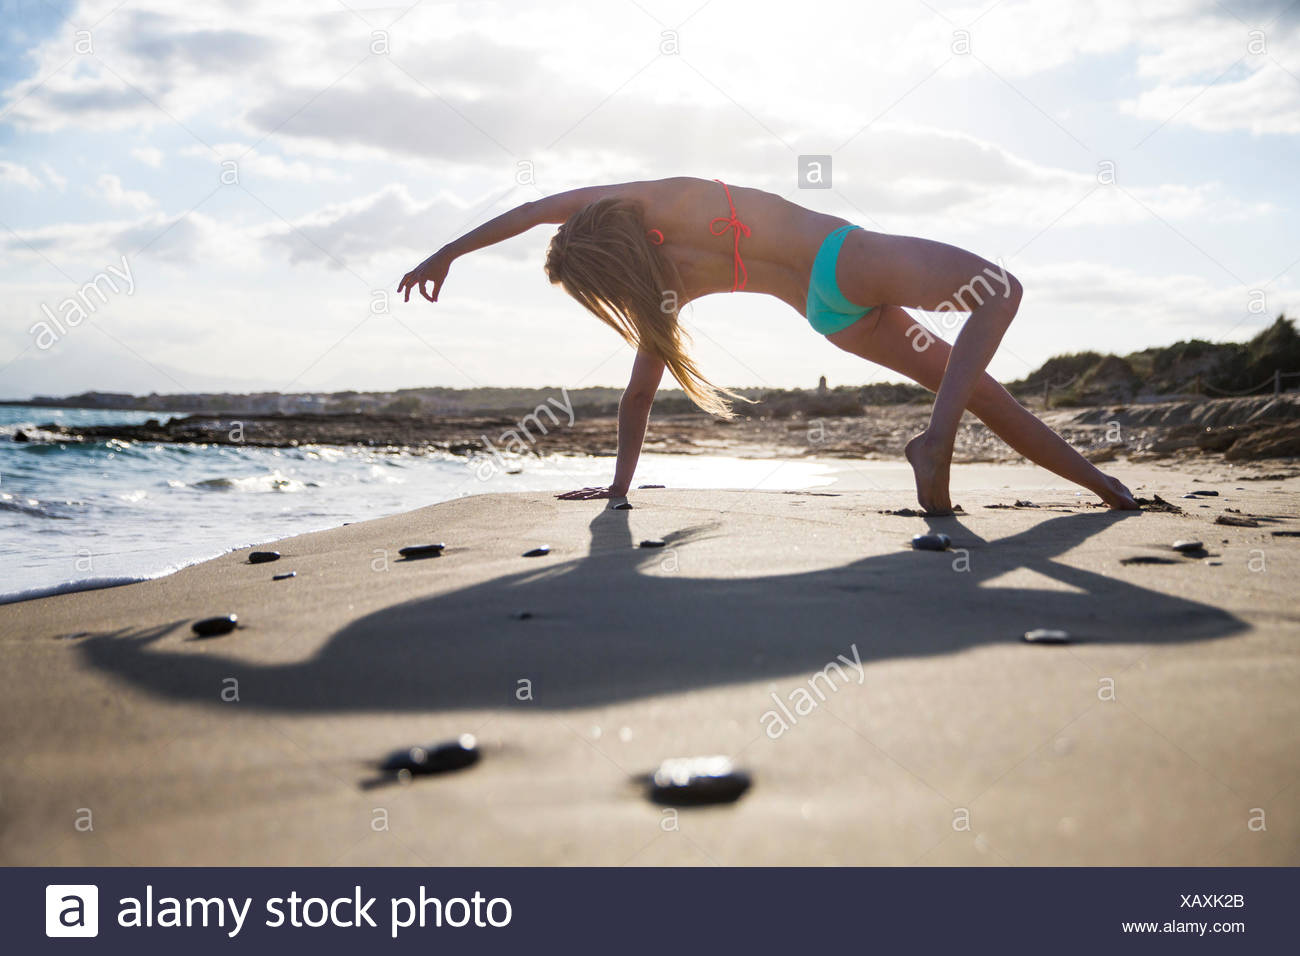 Young woman on beach, in yoga position, rear view - Stock Image